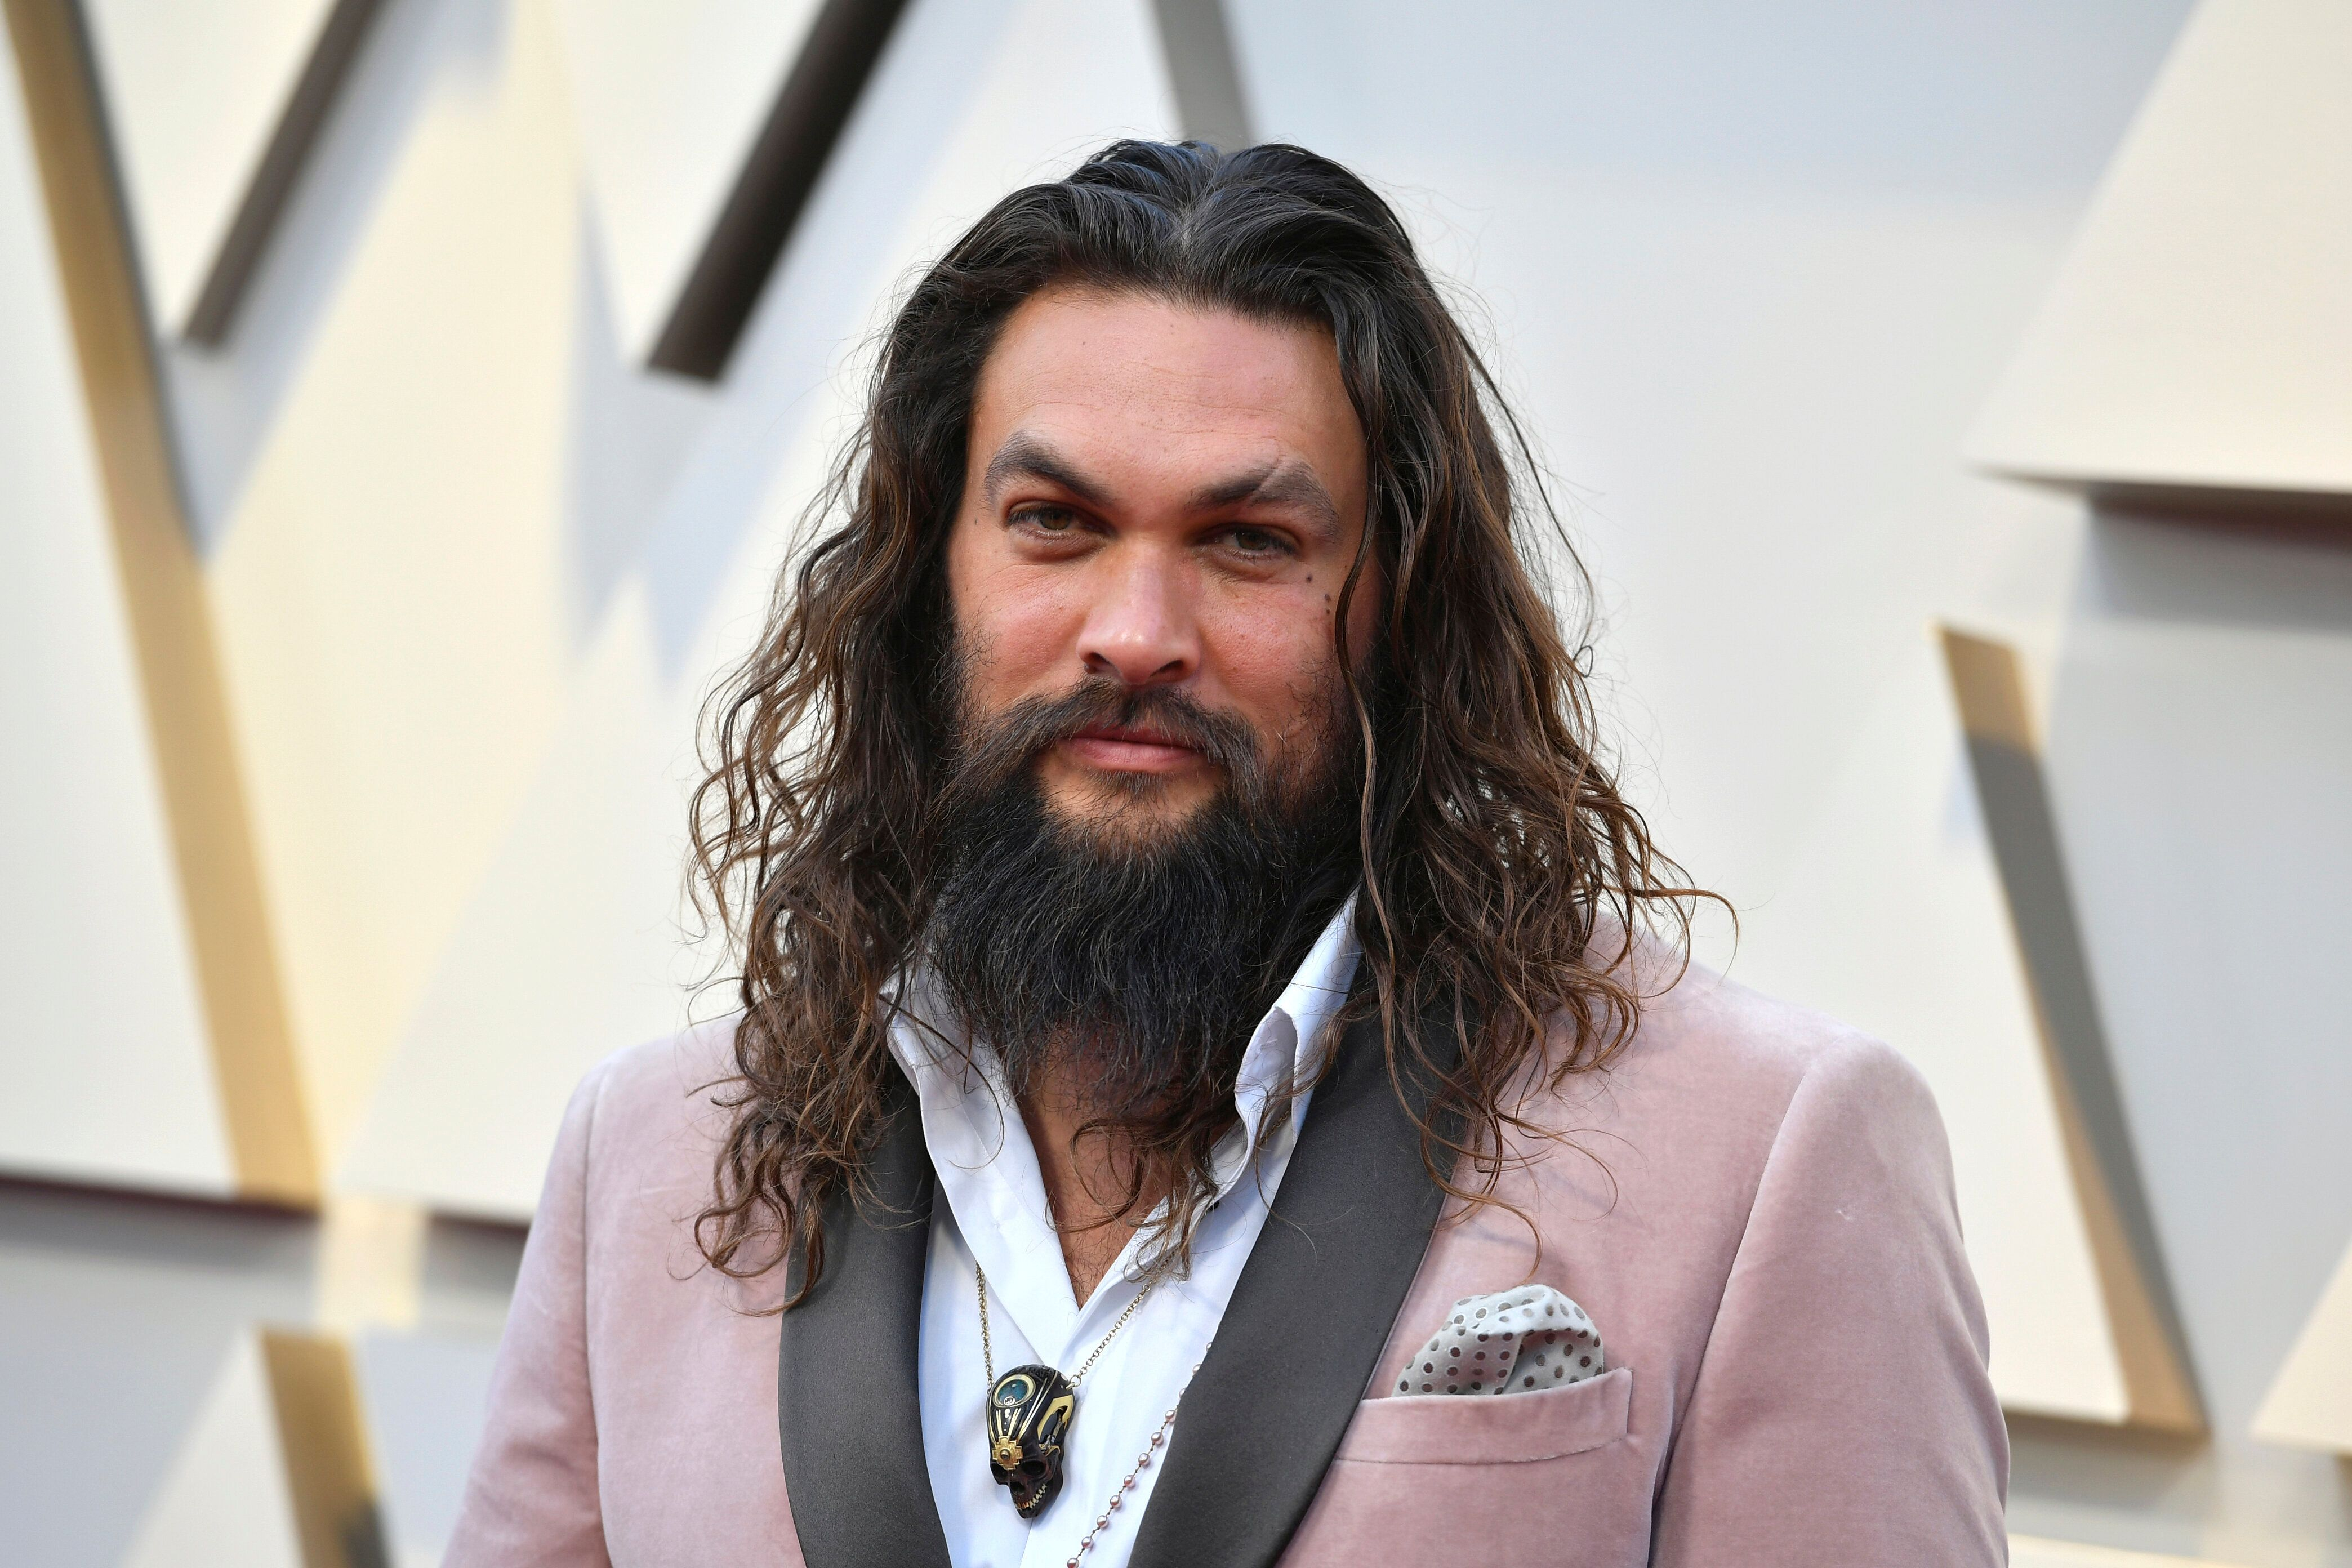 'What the f**k?': Jason Momoa Reacts To 'Game Of Thrones'